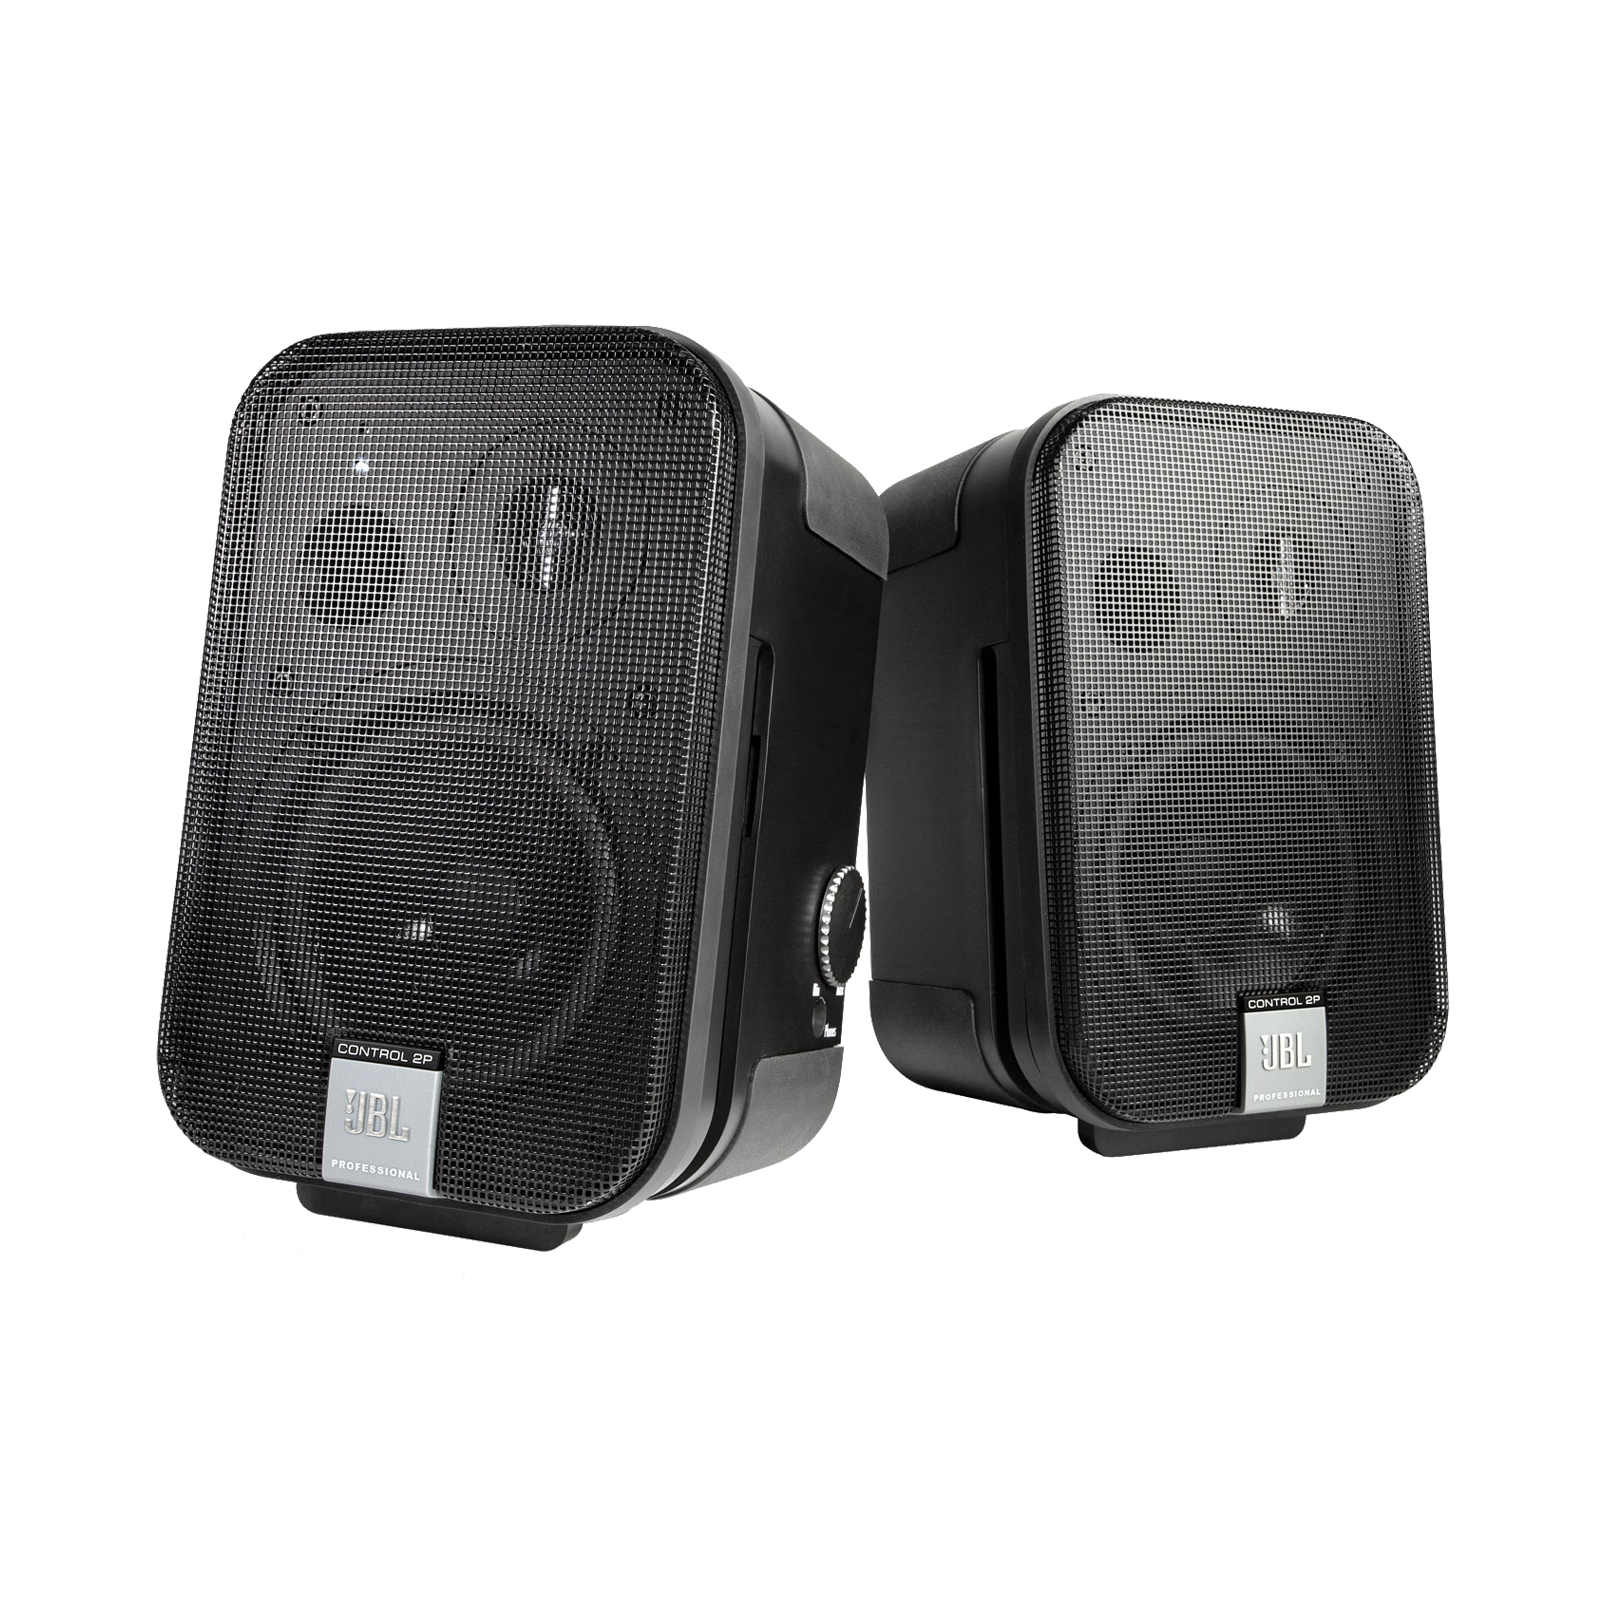 JBL Control 2P (Stereo Pair) - Black - Compact Powered Reference Monitor System - Hero